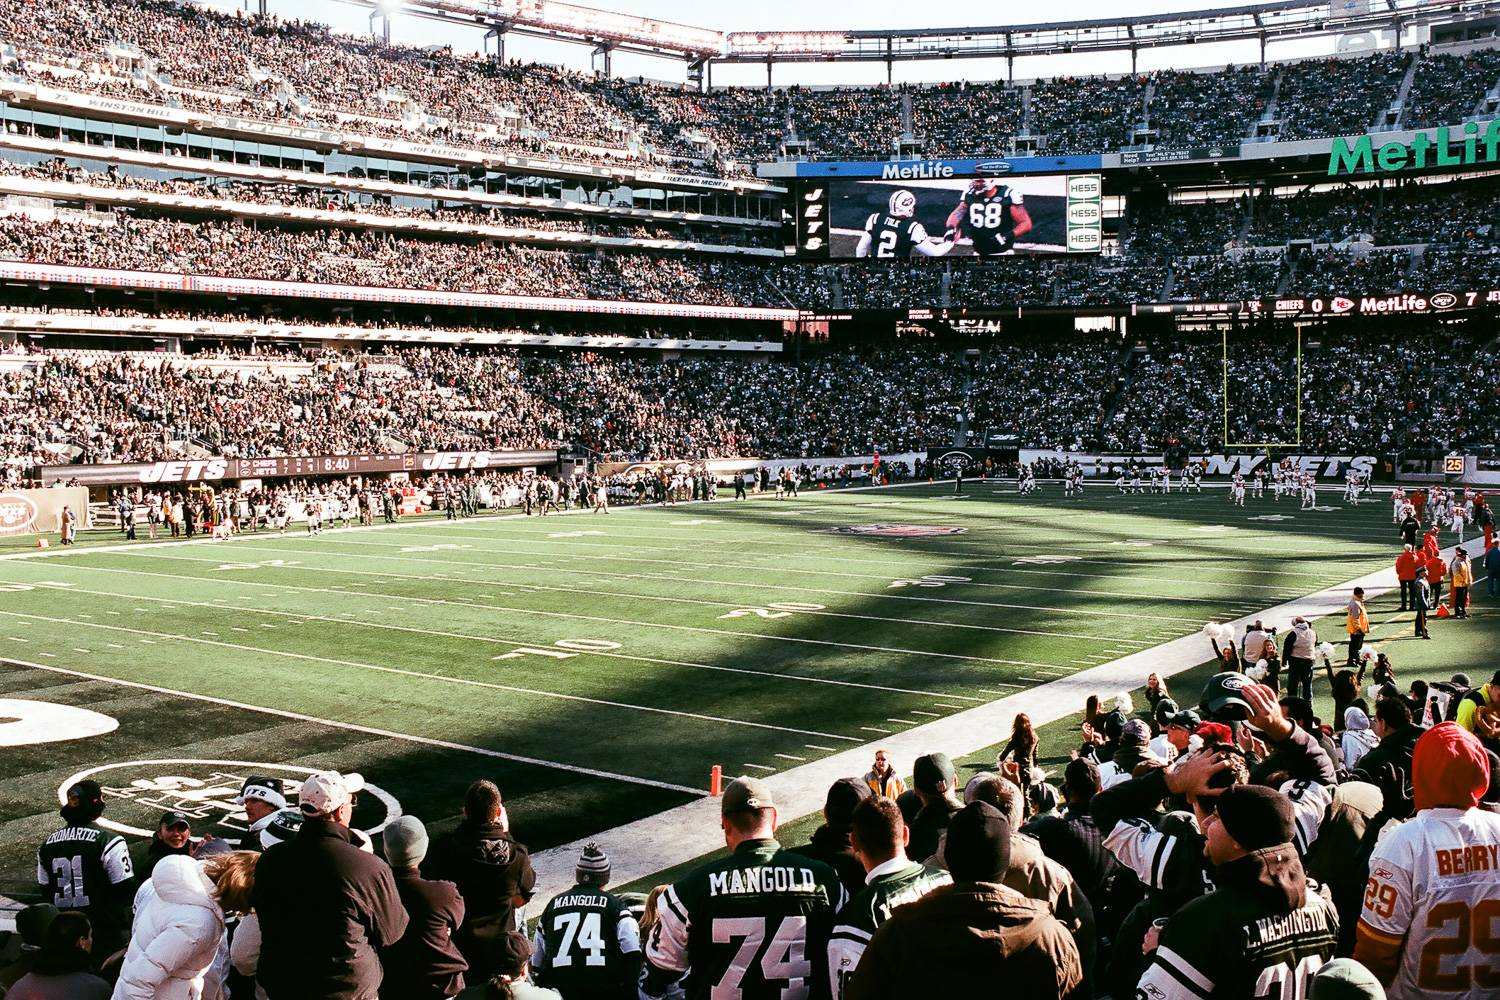 Image of MetLife Stadium from the stands during a New York Jets game.